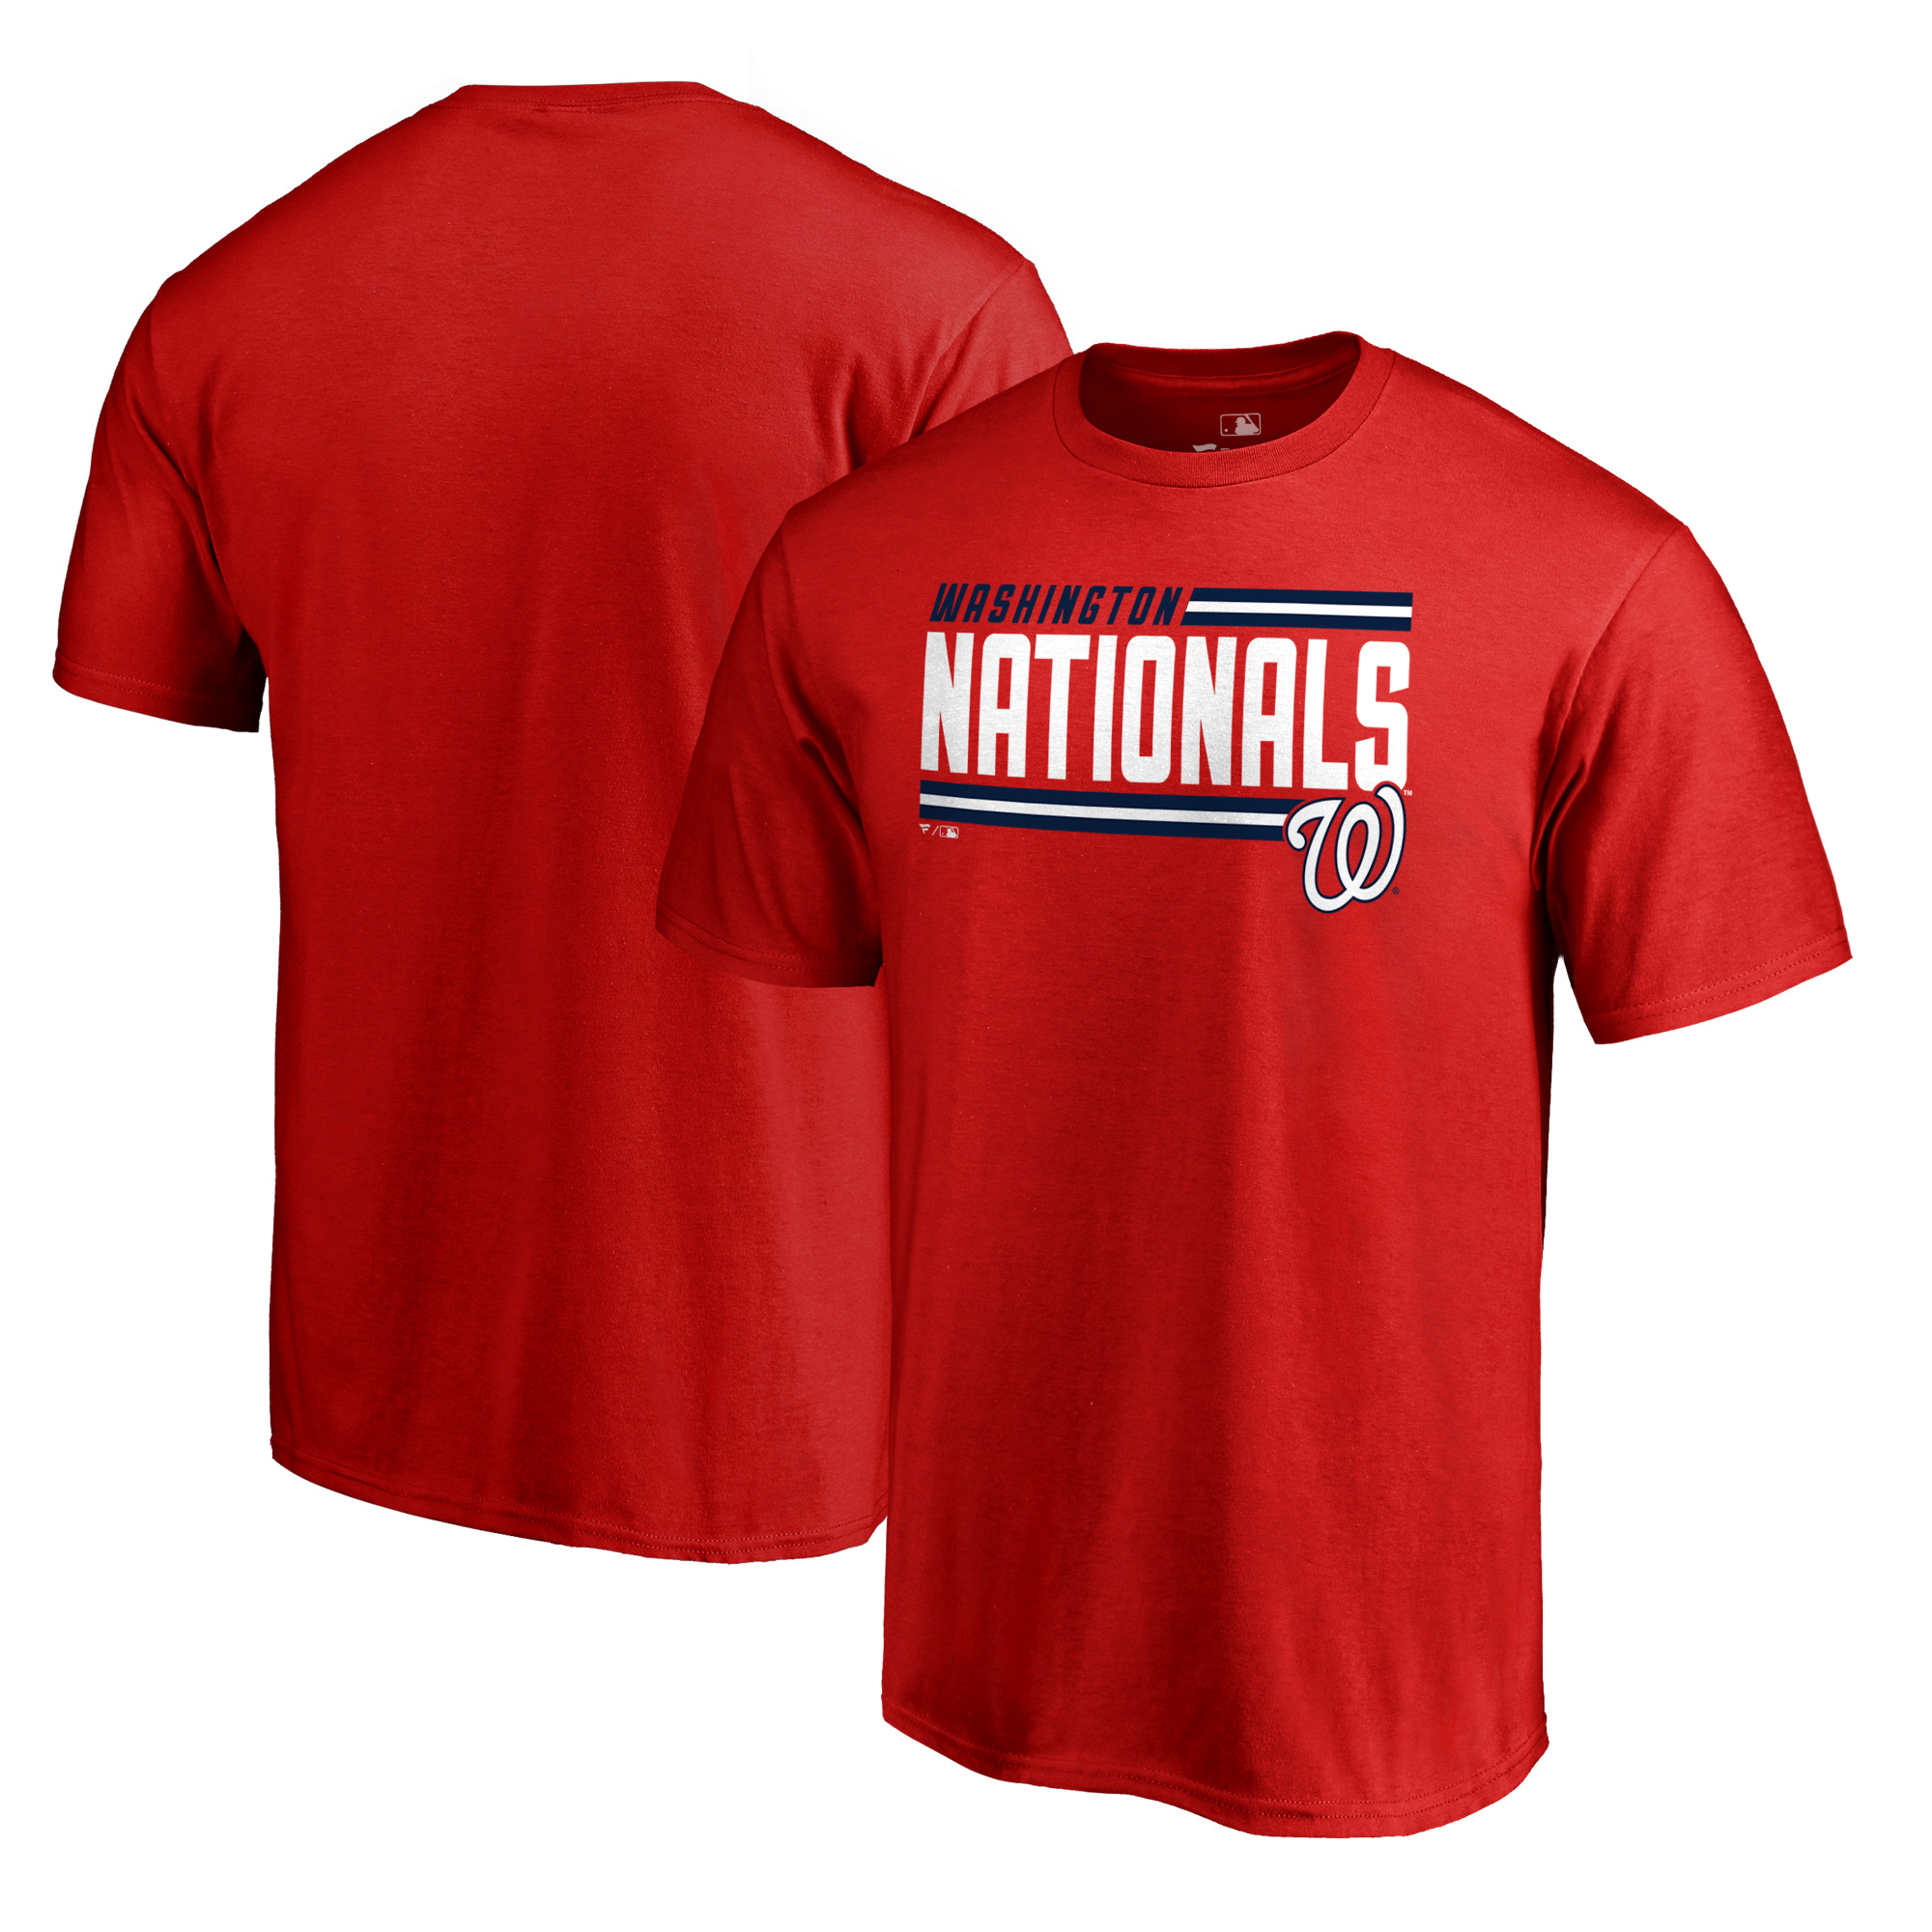 Washington Nationals Fanatics Branded Onside Stripe T-Shirt - Red